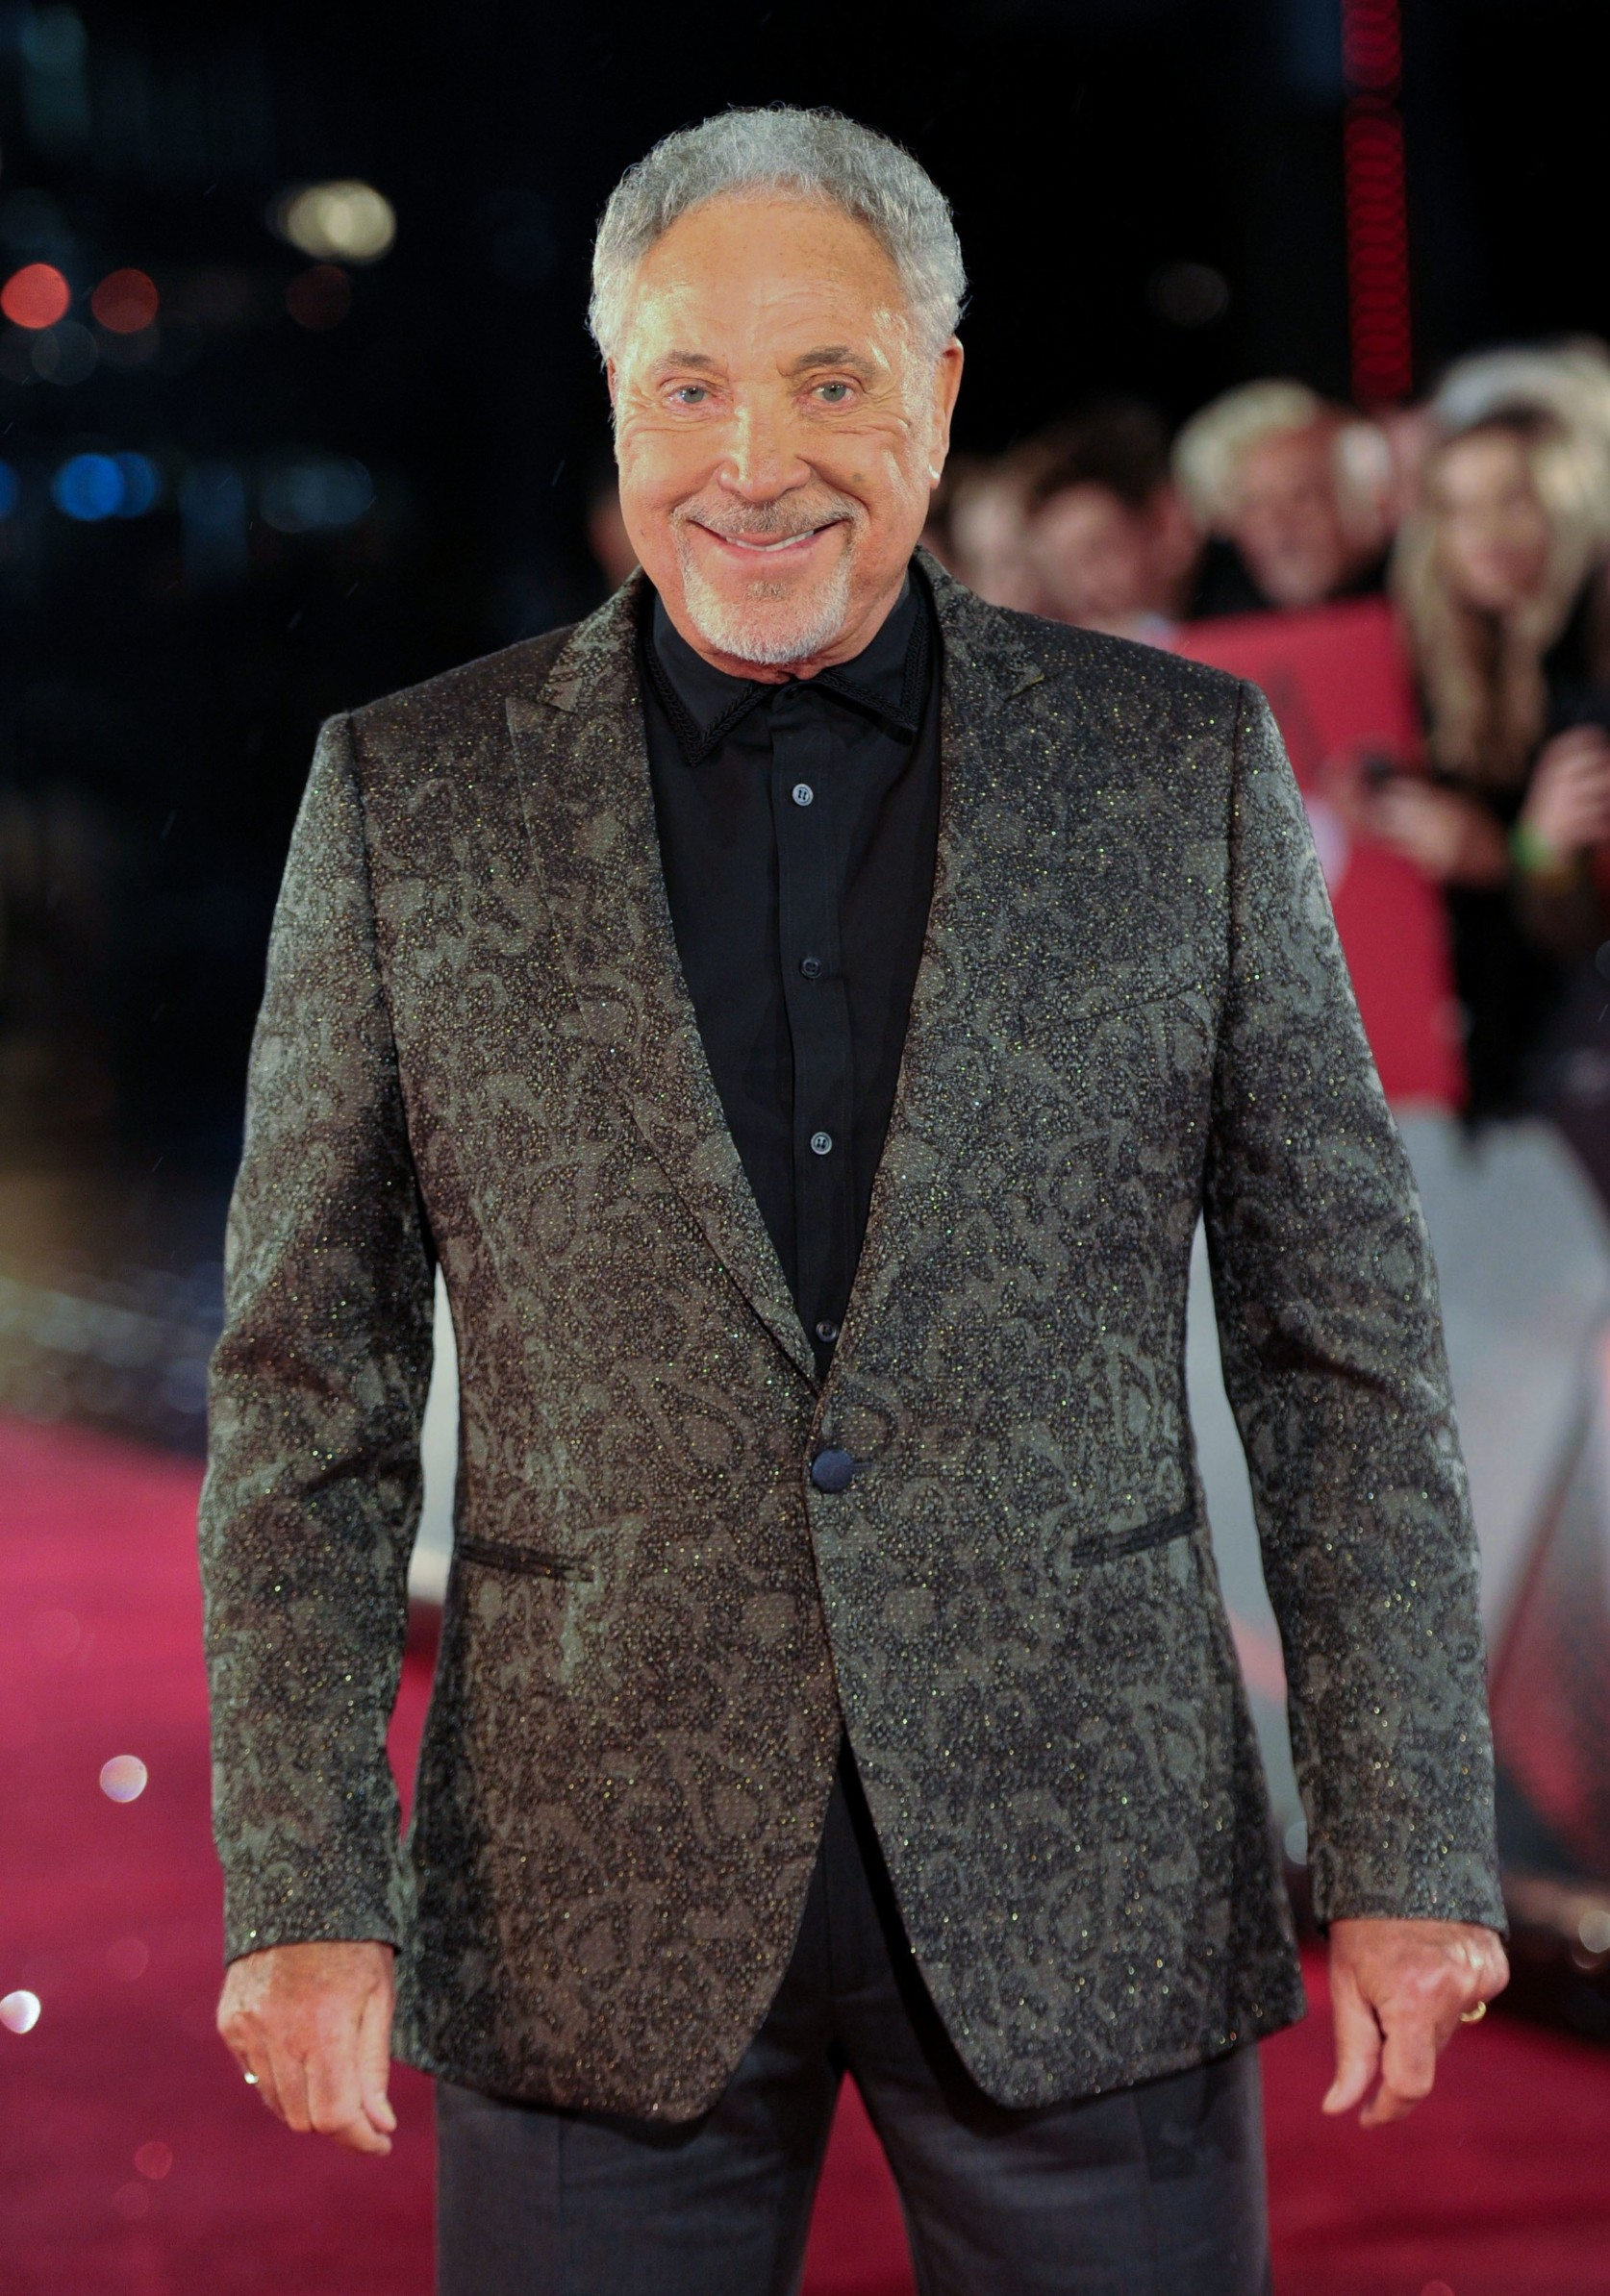 Tom Jones The Voice UK launch, Manchester, UK - 14 Oct 2019,Image: 476728121, License: Rights-managed, Restrictions: , Model Release: no